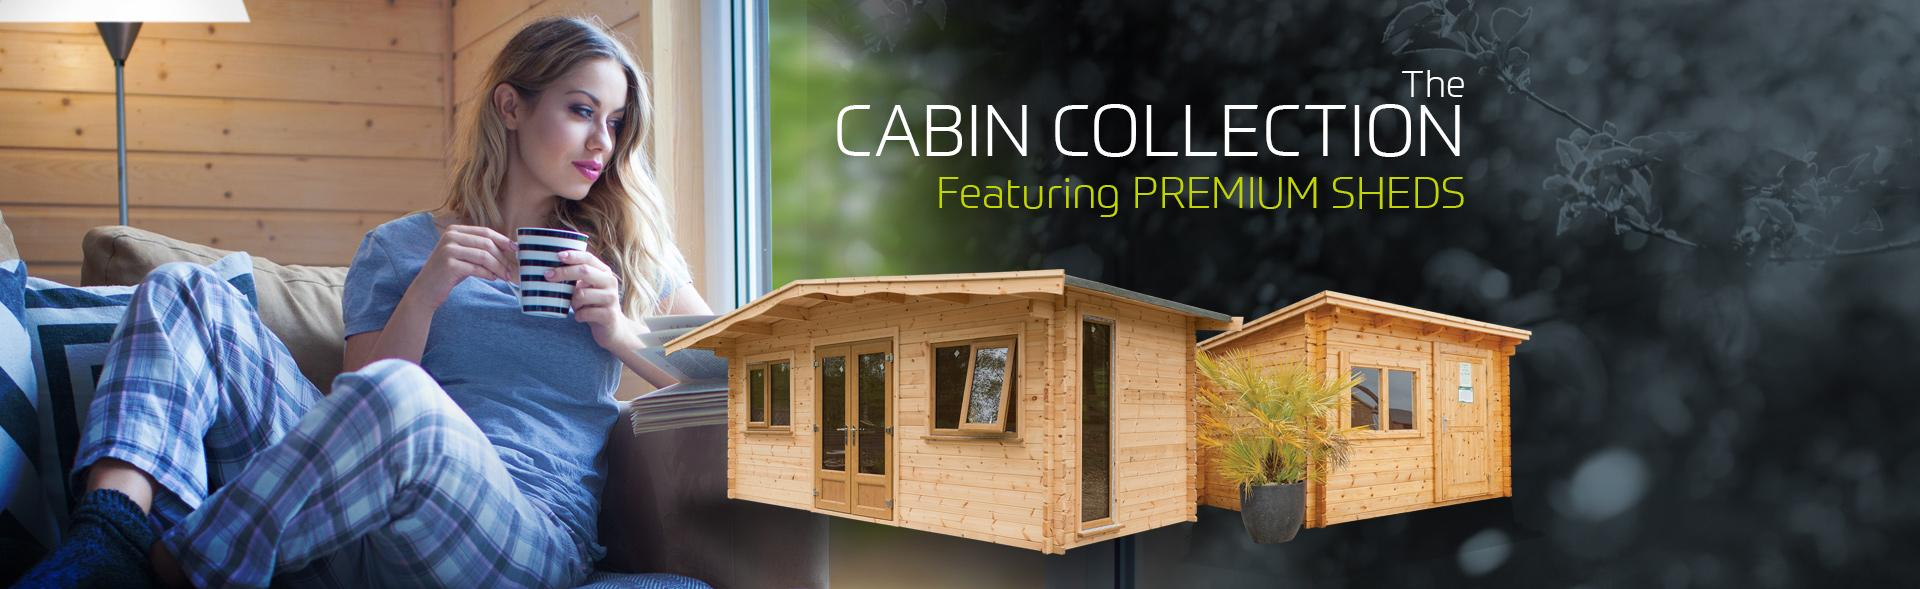 The Cabin Collection